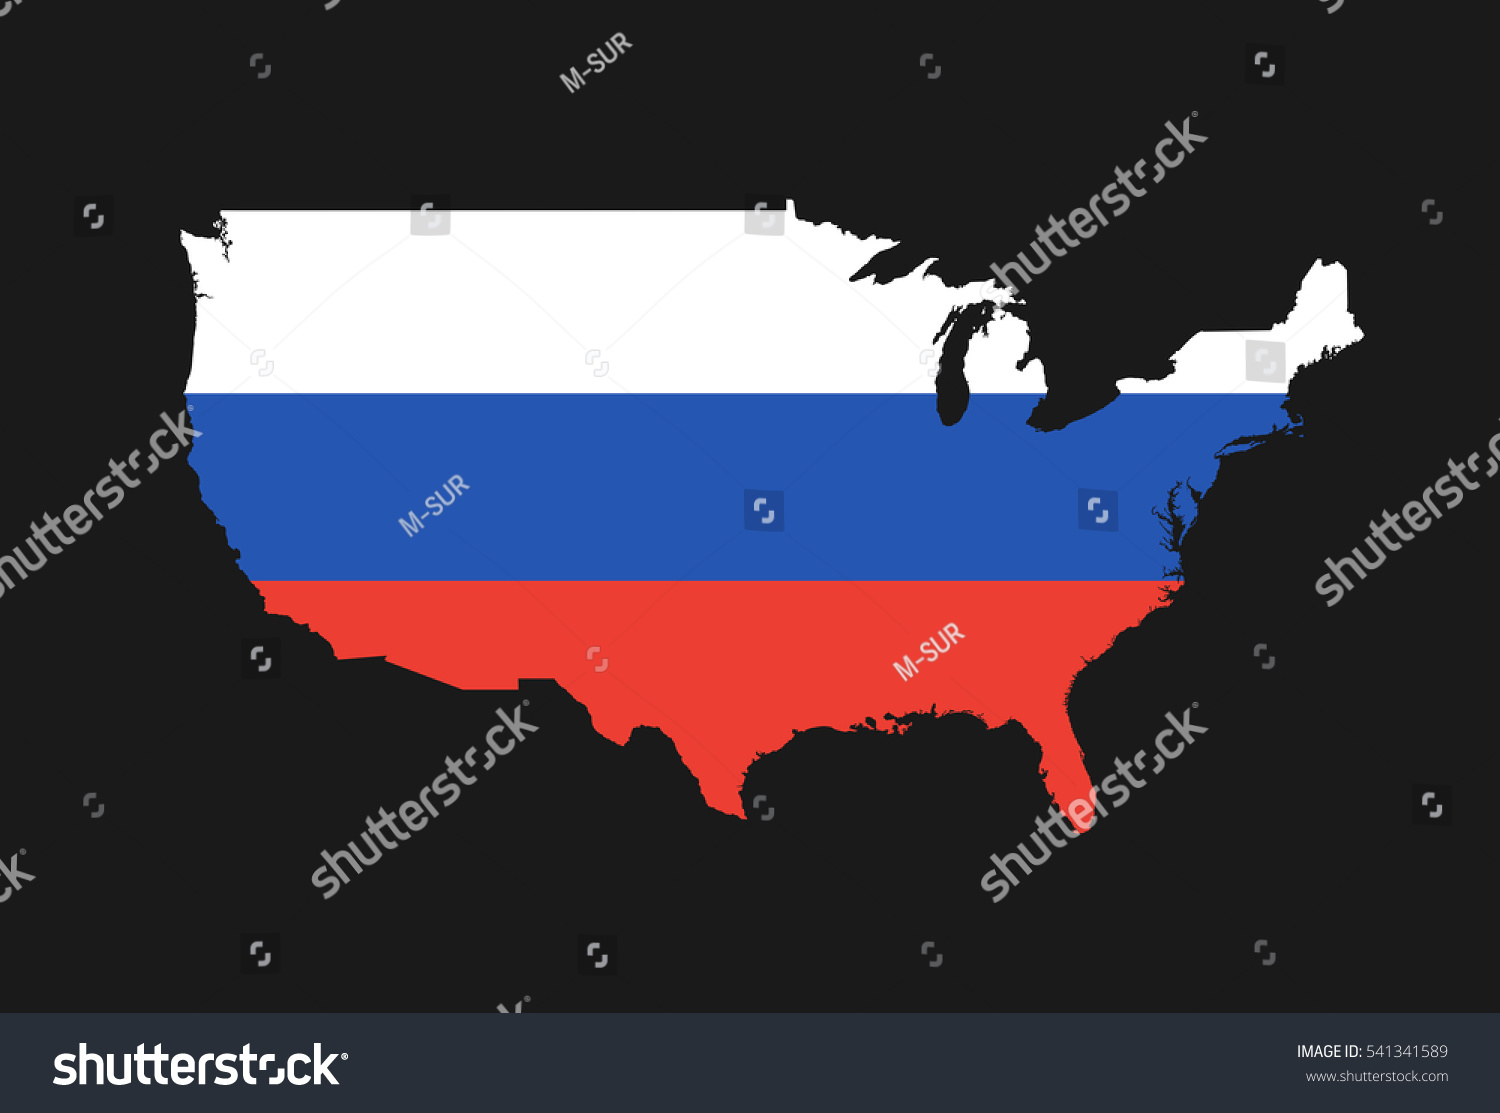 Usa And Russia Map.Map Usa Colors Russia Metaphor Russian Stock Vector Royalty Free